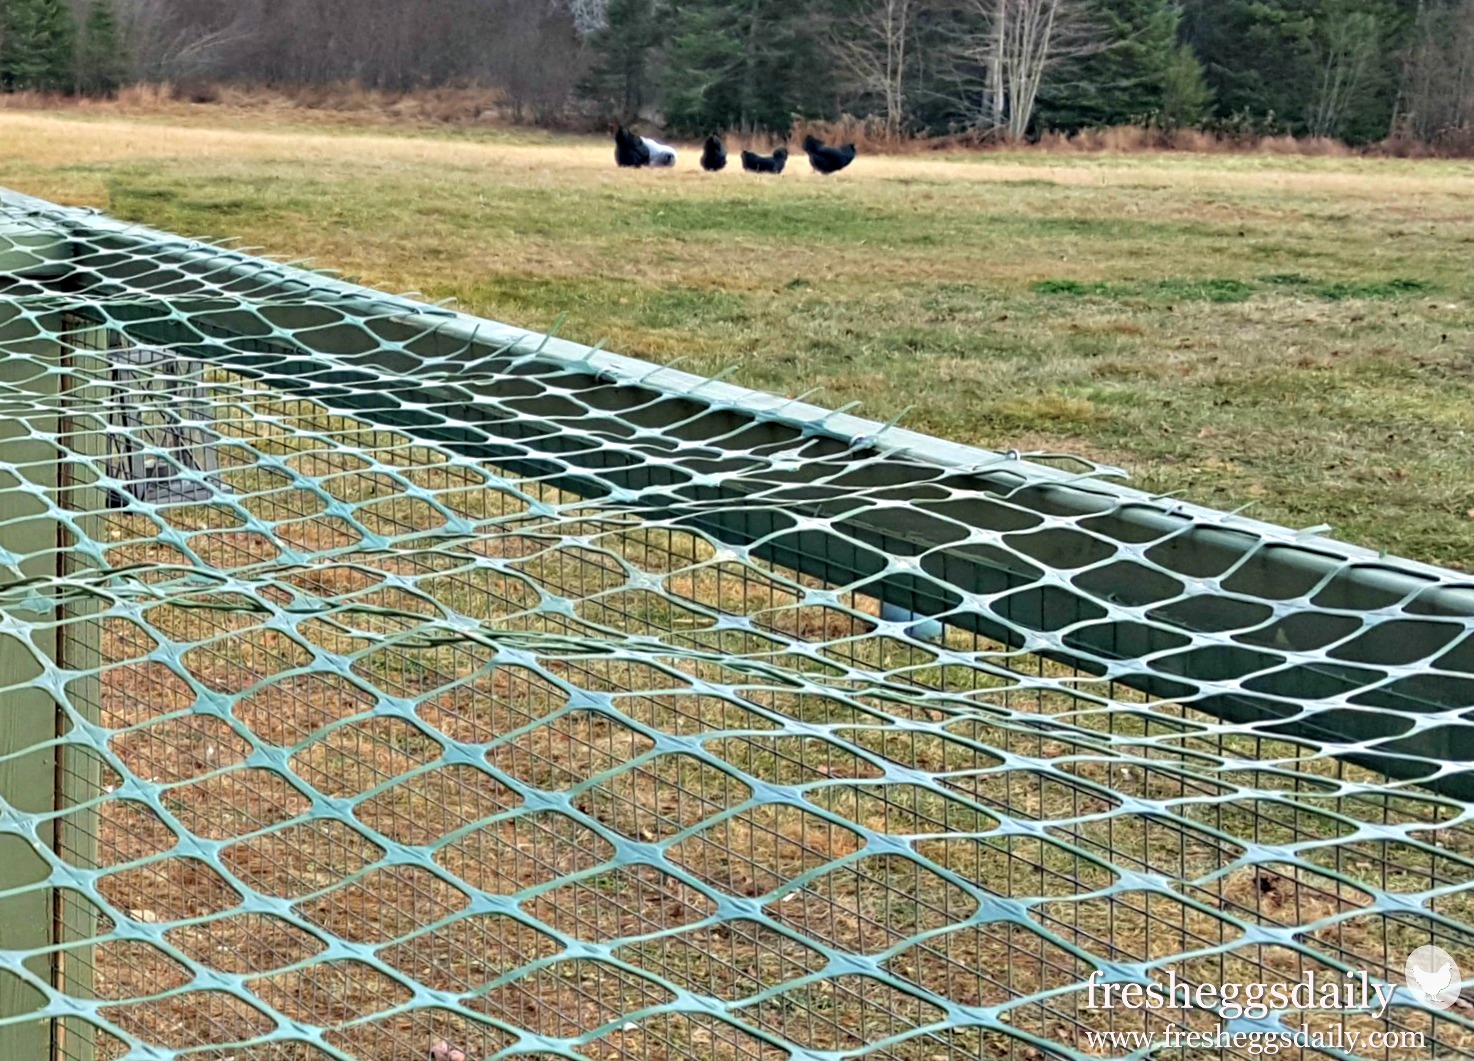 Choosing The Right Fencing For Your Chicken Coop Run Or Garden Joining Electric Wire Poultry Netting